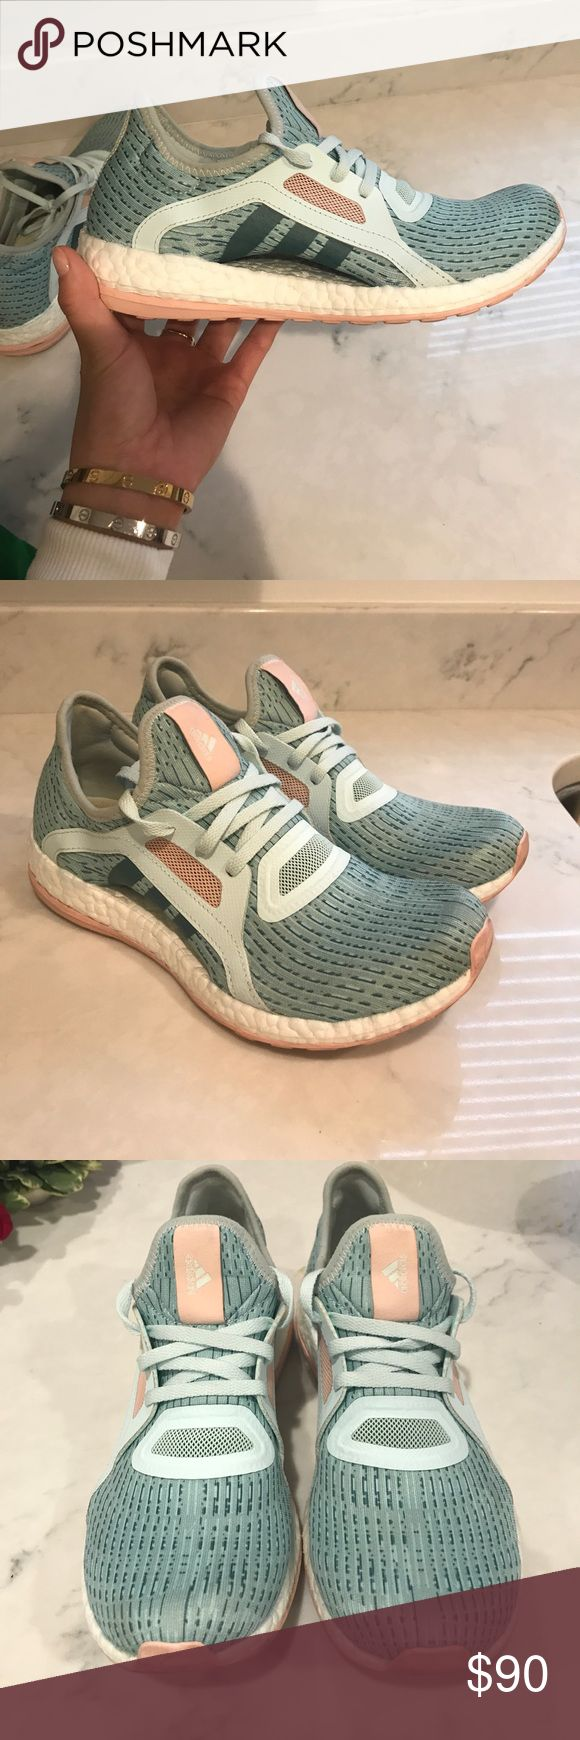 Adidas Pure Boost In excellent condition. Super light, comfortable, and stylish. Purchased at Kith. Pale blue, light pink, and white are the main colors. adidas Shoes Athletic Shoes